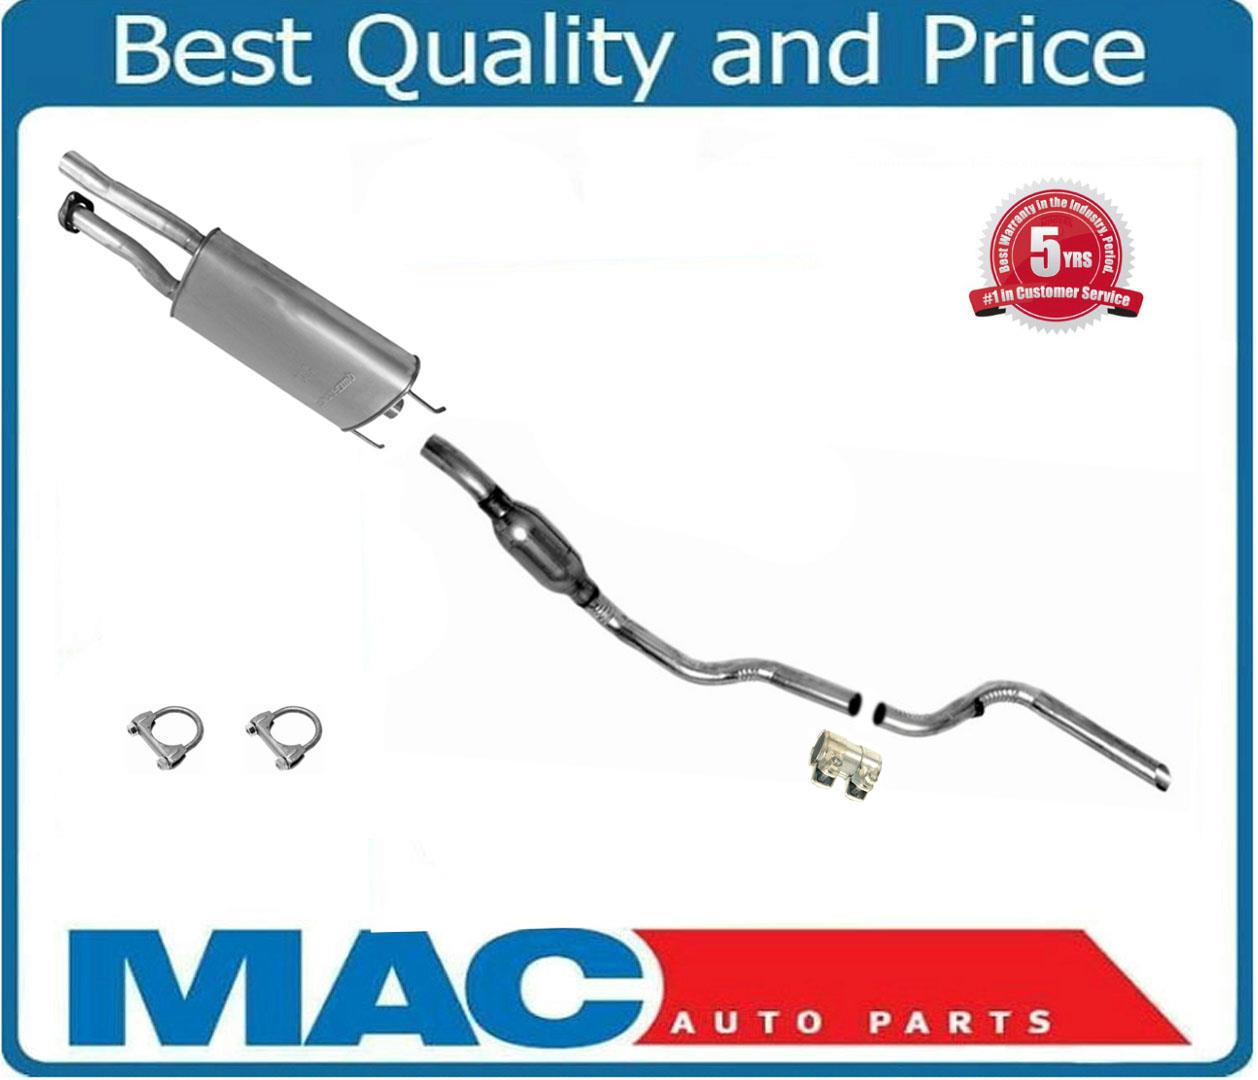 Details about Fits 97 to 11/08/99 4 0L Ford Explorer 4 Door Dual Inlet  Muffler Exhaust System